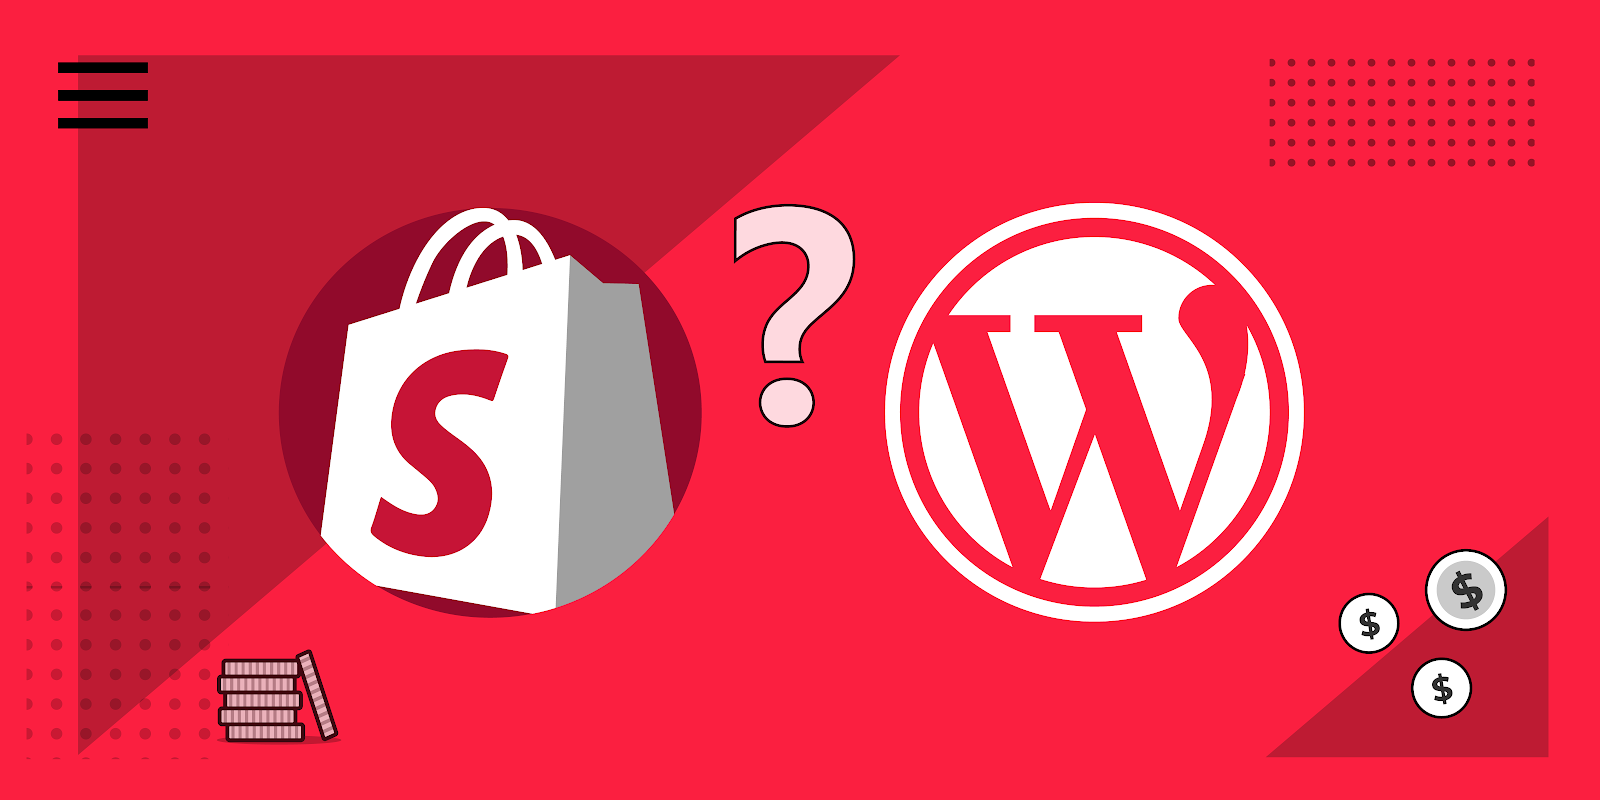 Wordpress Or Shopify? Which Platform Is Better For Building Your Ecommerce Store?